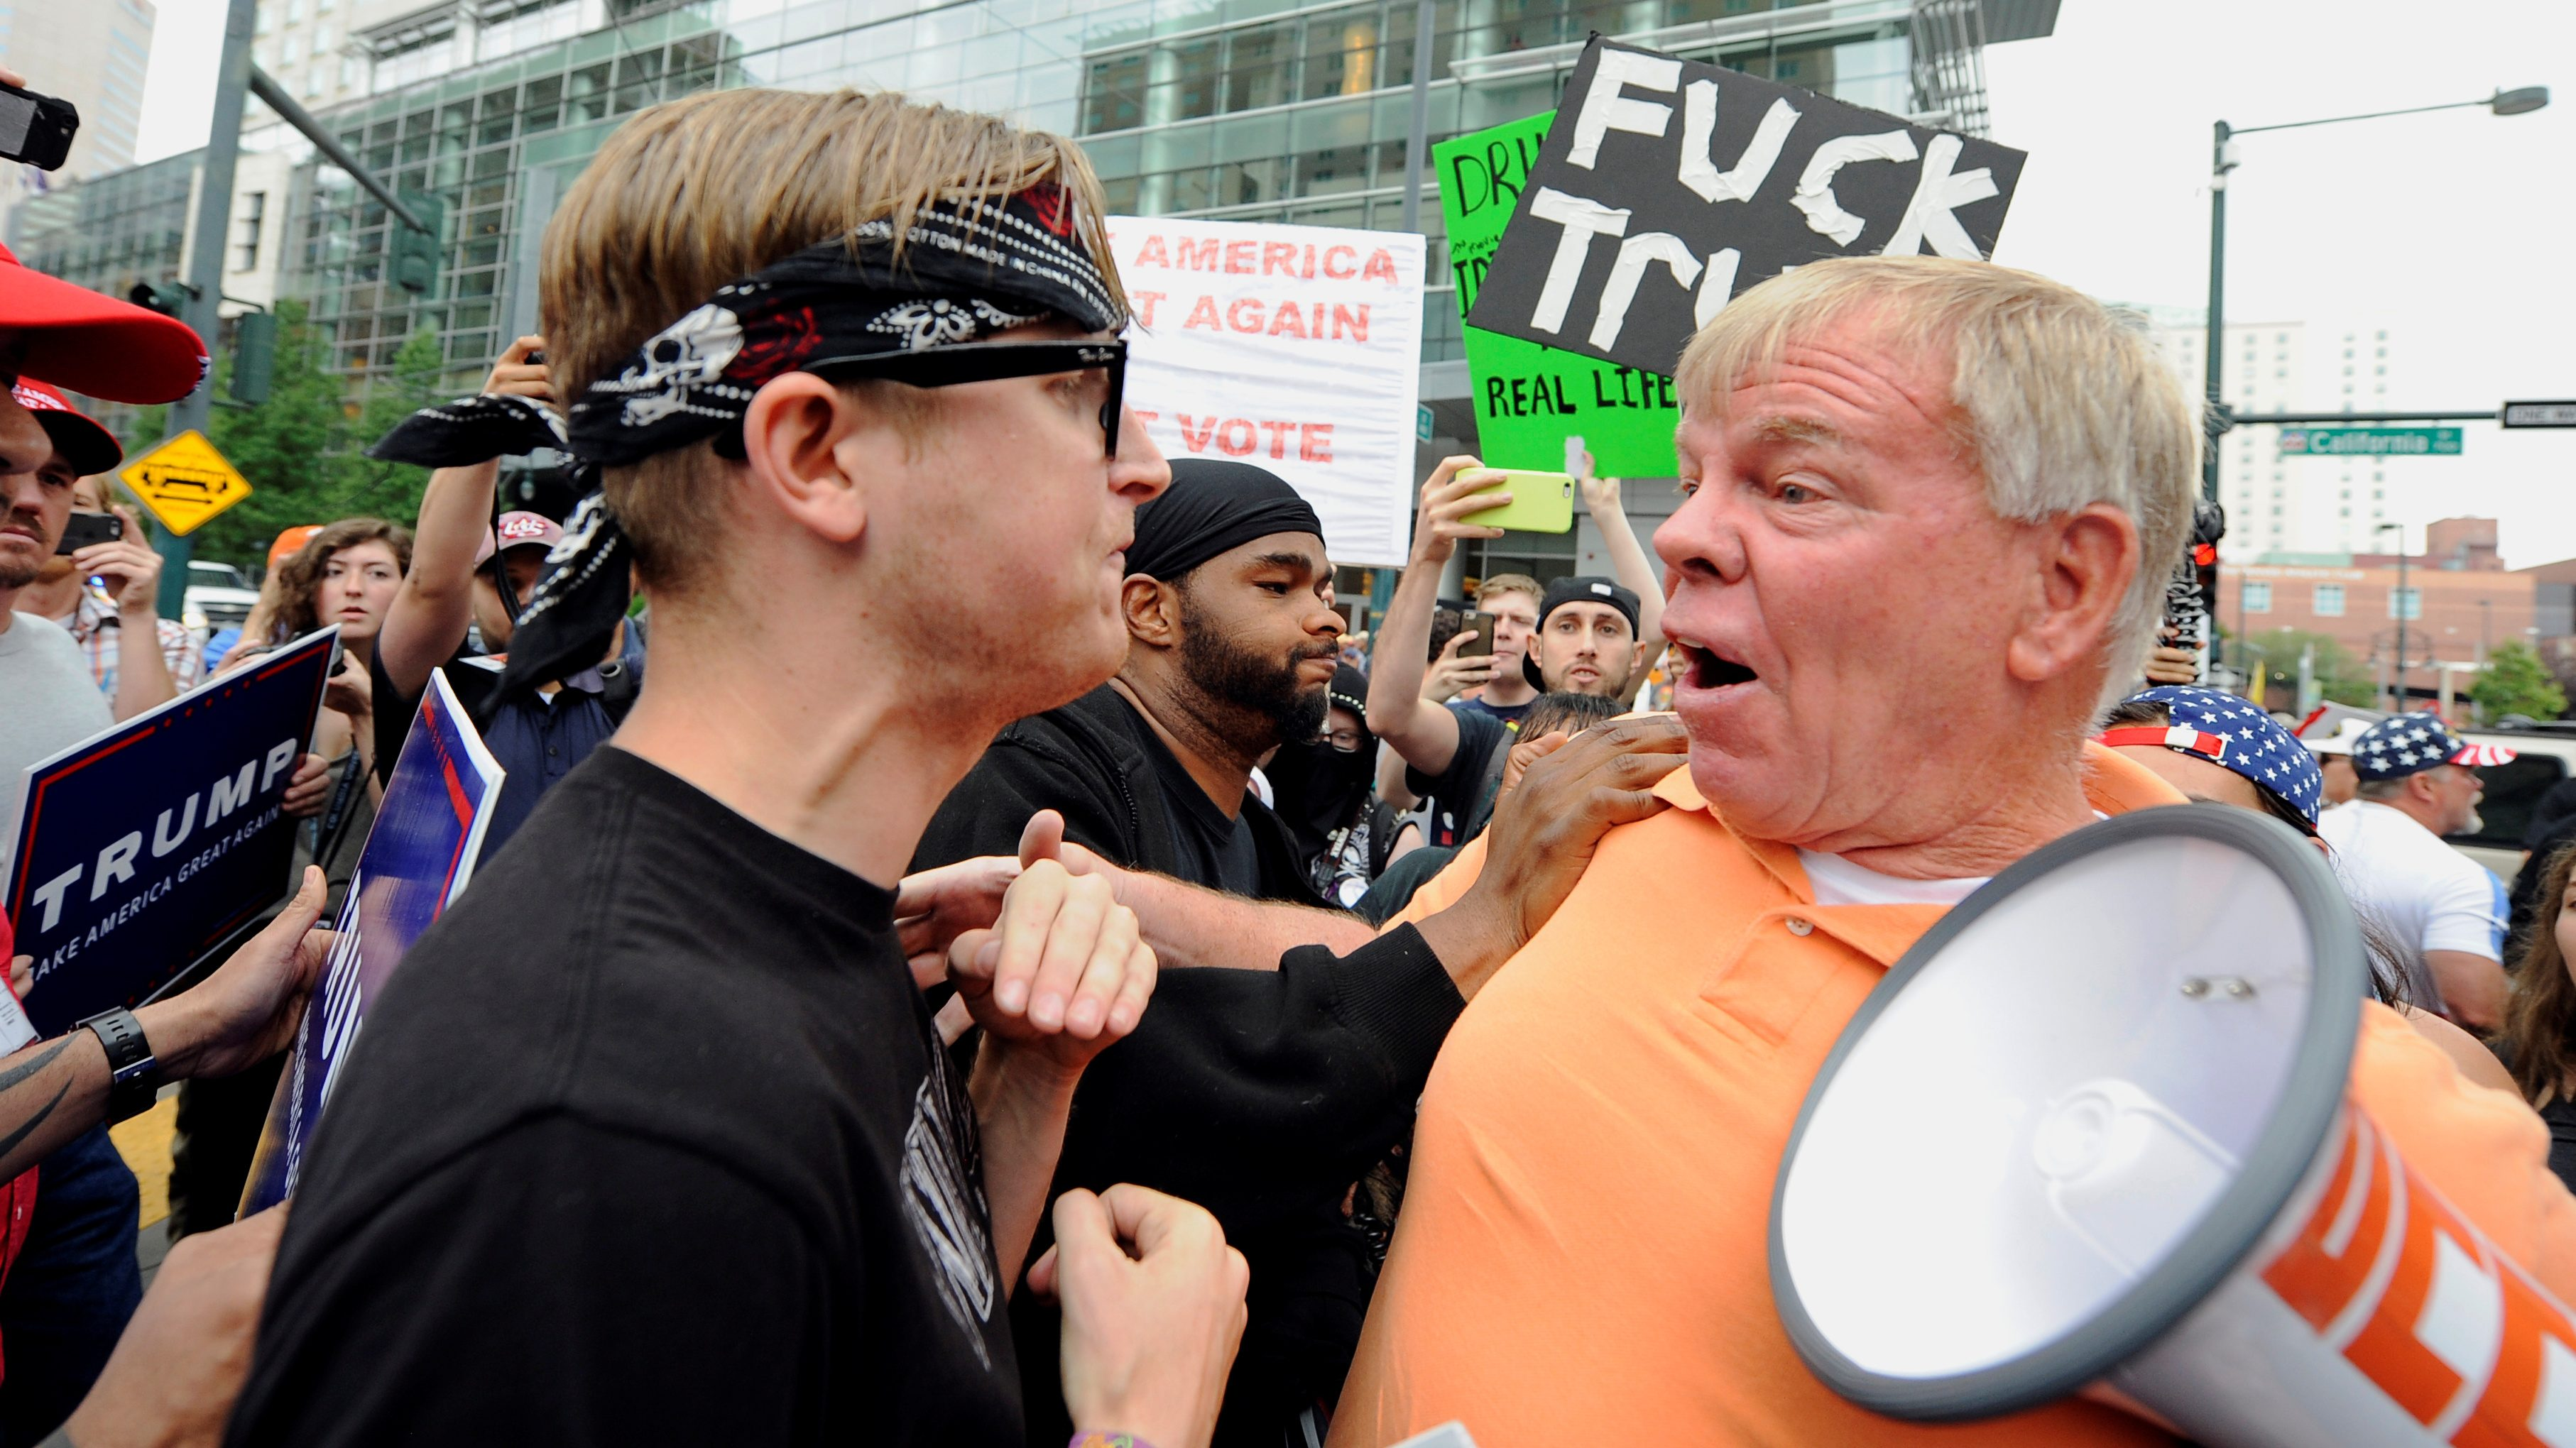 An unidentified anti-Trump protestor (L) and an unidentified Trump supporter (R) get into a scuffle outside the venue where U.S. Republican presidential candidate Donald Trump was speaking in downtown Denver, U.S. July 1, 2016.